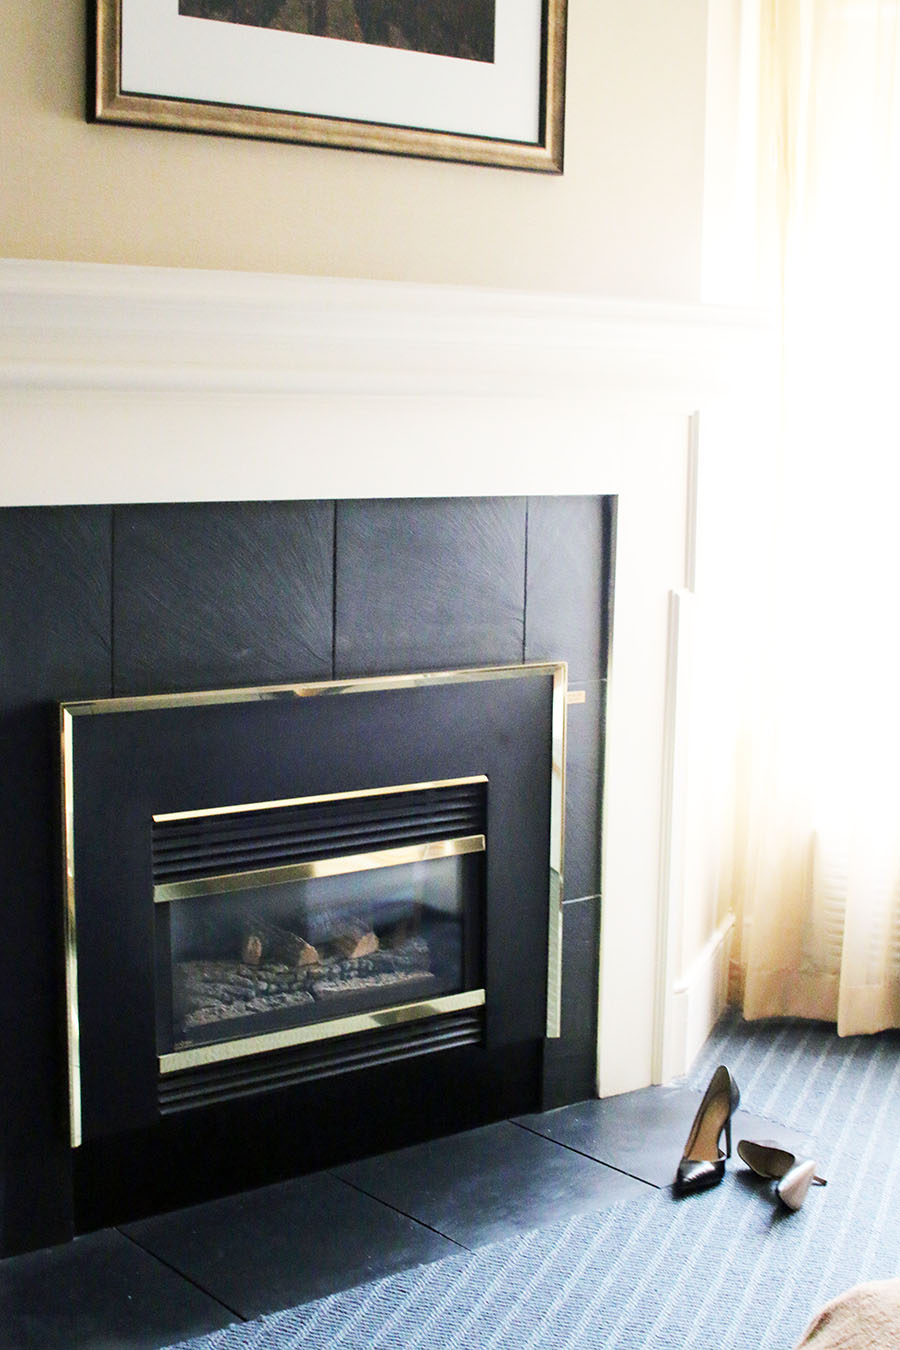 niagara-on-the-lake-hotel-room-with-fireplace